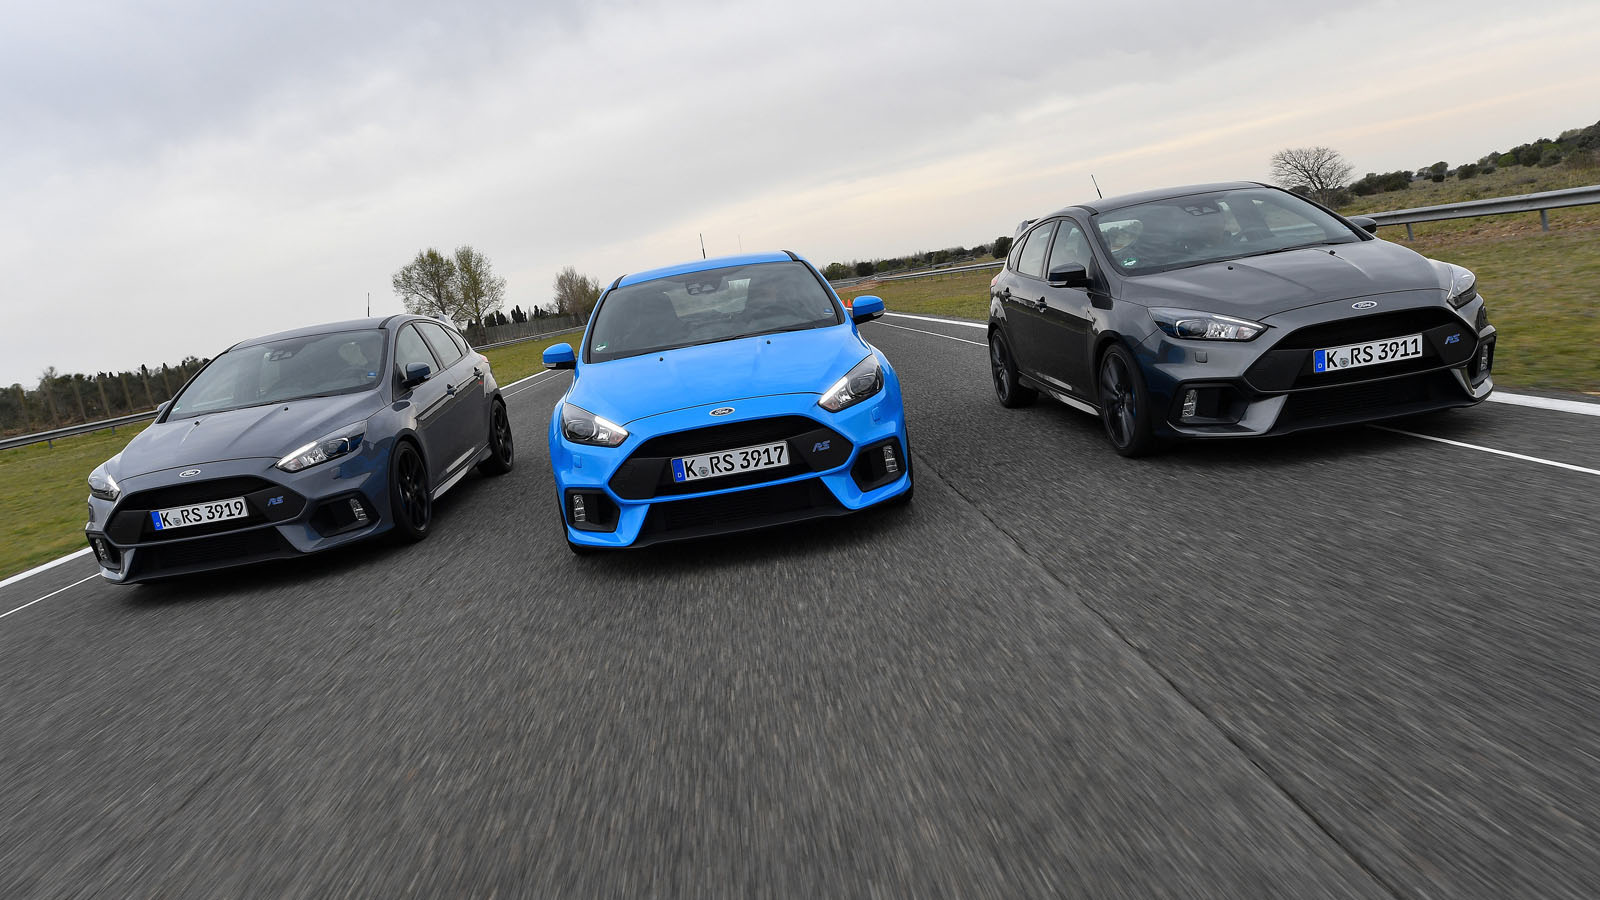 essai de la ford focus rs la nouvelle compacte sportive de r f rence french driver. Black Bedroom Furniture Sets. Home Design Ideas